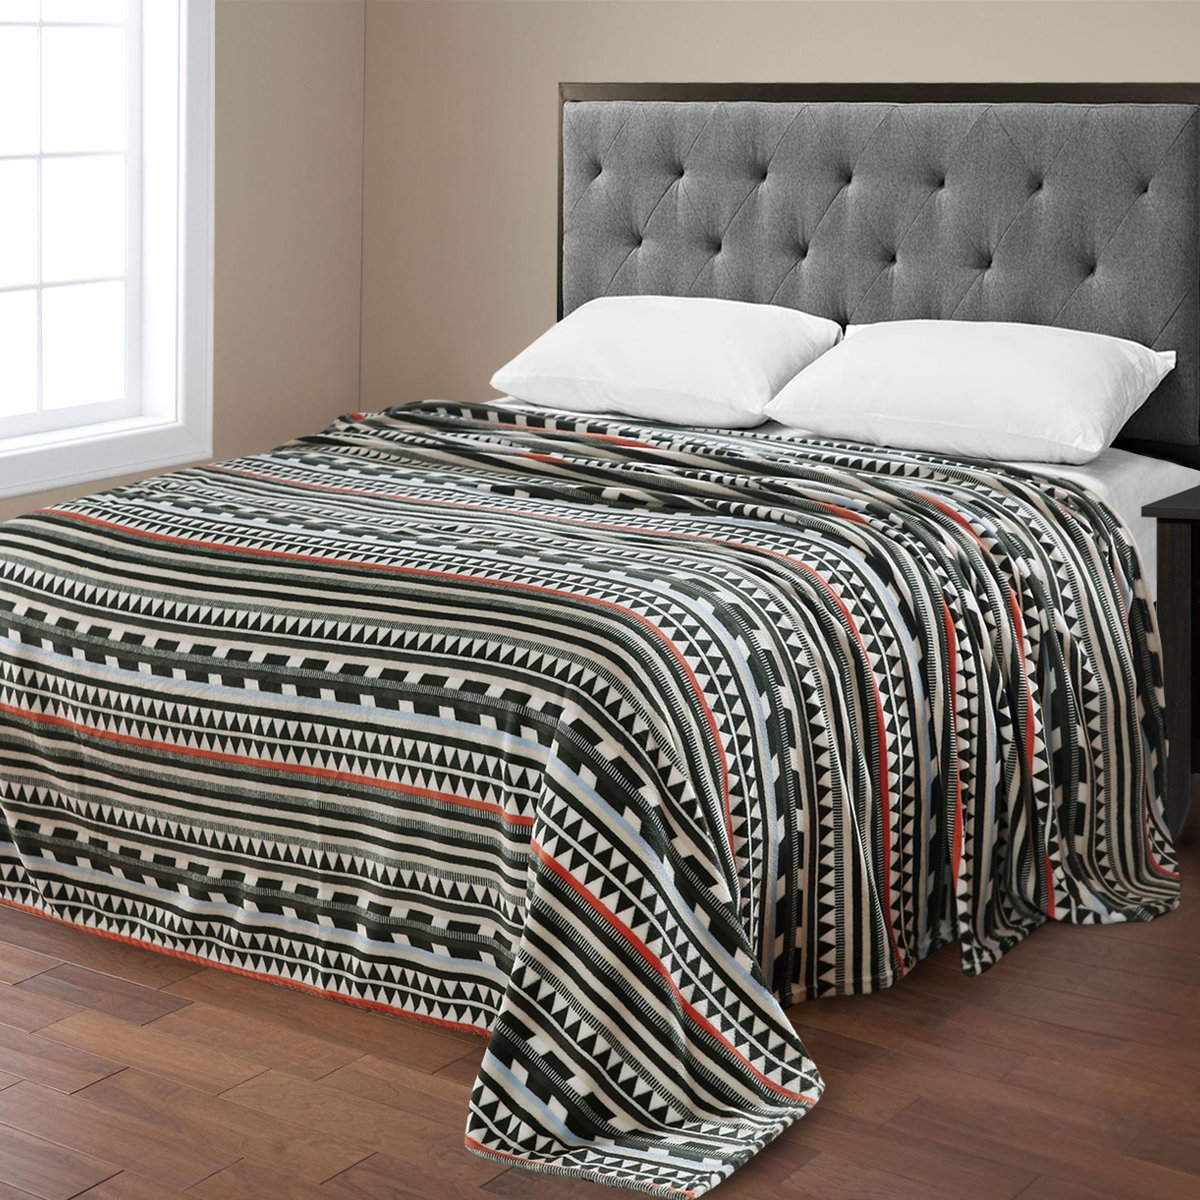 skull cover aztec screenshot rags duvet and ink bedding products fire